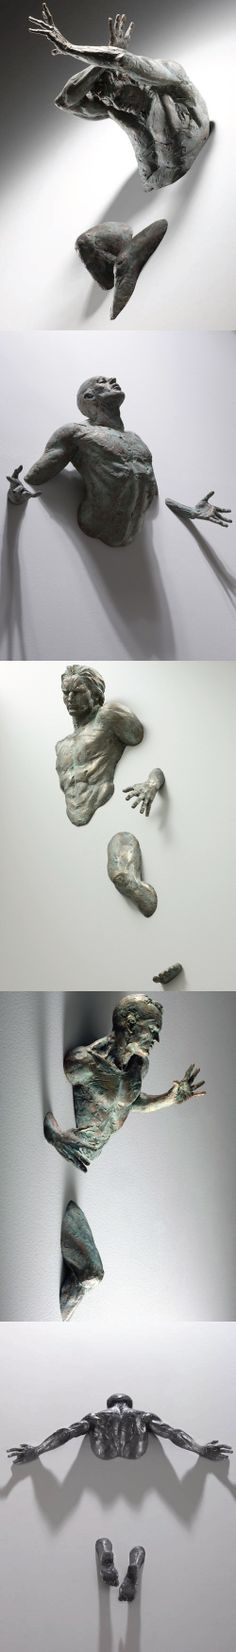 SCULPTOR MATTEO PUGLIESE DEFTLY IMBUES HIS WORK WITH A RANGE OF HUMAN EMOTION. PUROLOVER PINTEREST